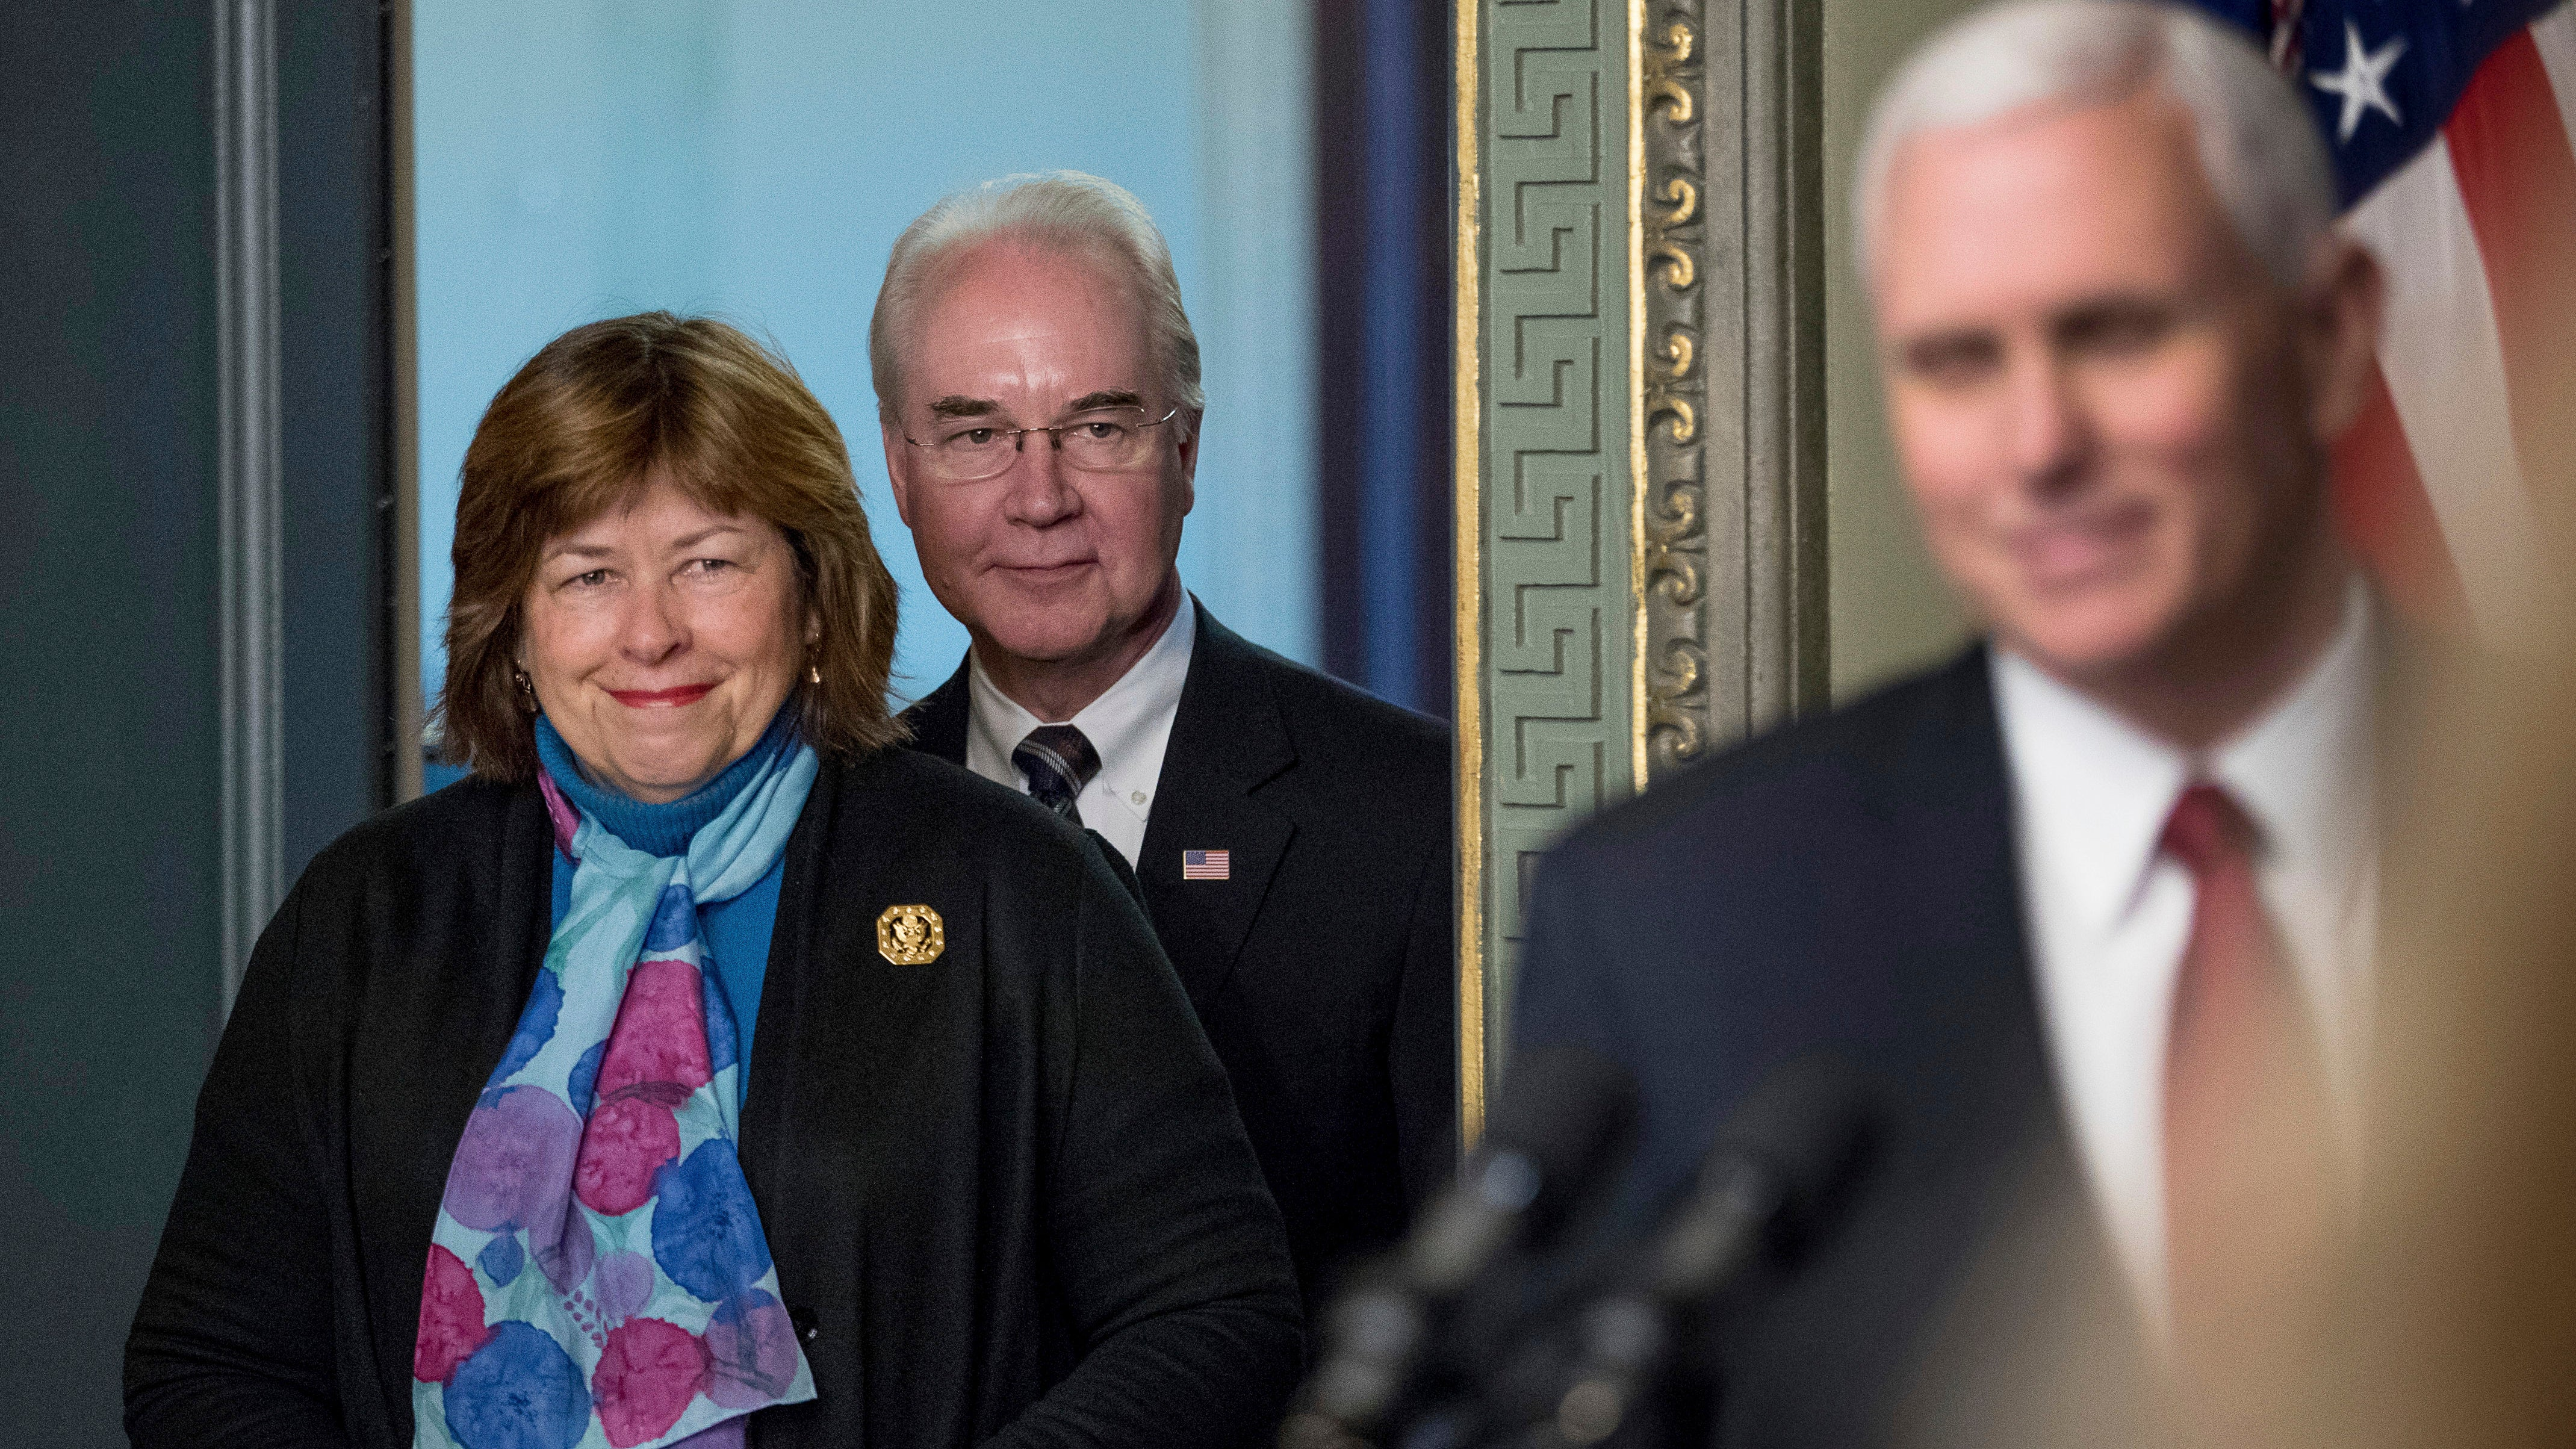 US Politician Ponders Whether They Could Just 'Quarantine' People With HIV